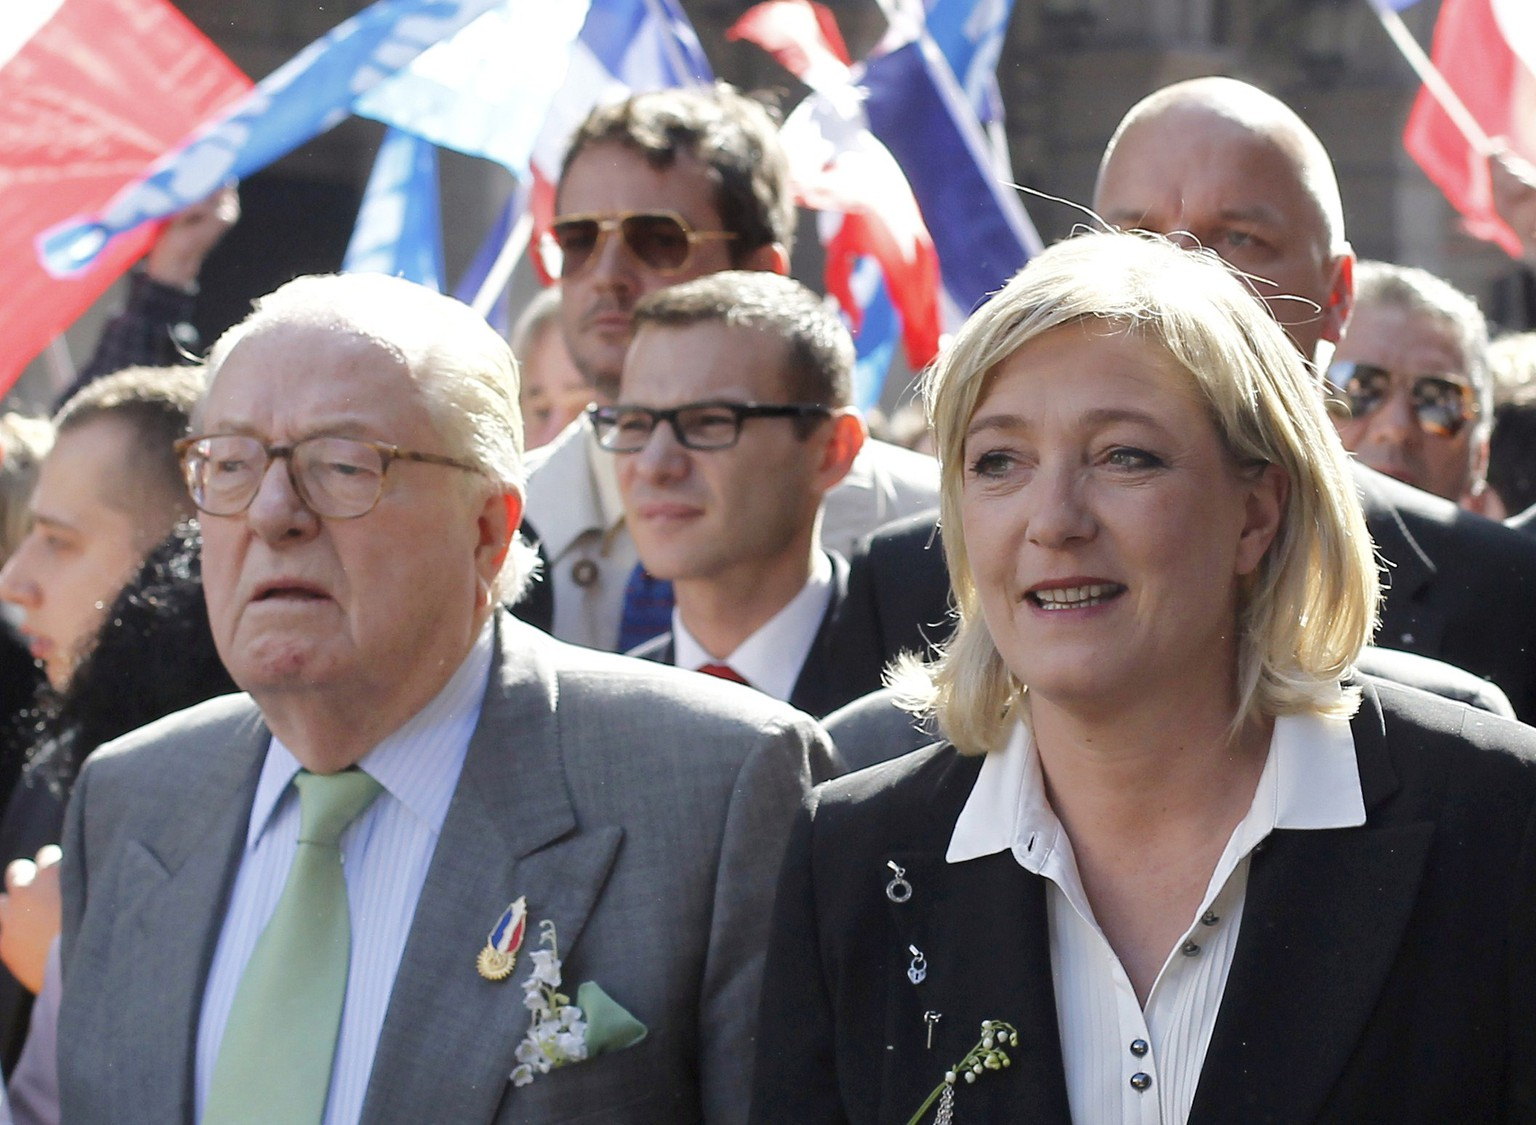 "(FILES) - A photo taken on May 1, 2012 in Paris shows French far right party Front National (FN) former presidential candidate, Marine Le Pen (R), walking near her father and former FN president Jean-Marie Le Pen (R). Anti-racism campaigners reacted with outrage on June 8, 2014 to an apparent anti-Semitic pun by France's former far-right leader Jean-Marie Le Pen that even his own party and daughter were quick to criticise. Le Pen, who has had multiple convictions for inciting racial hatred and denying crimes against humanity, once described Nazi gas chambers as a ""detail"" of history.    AFP PHOTO / THOMAS COEX"